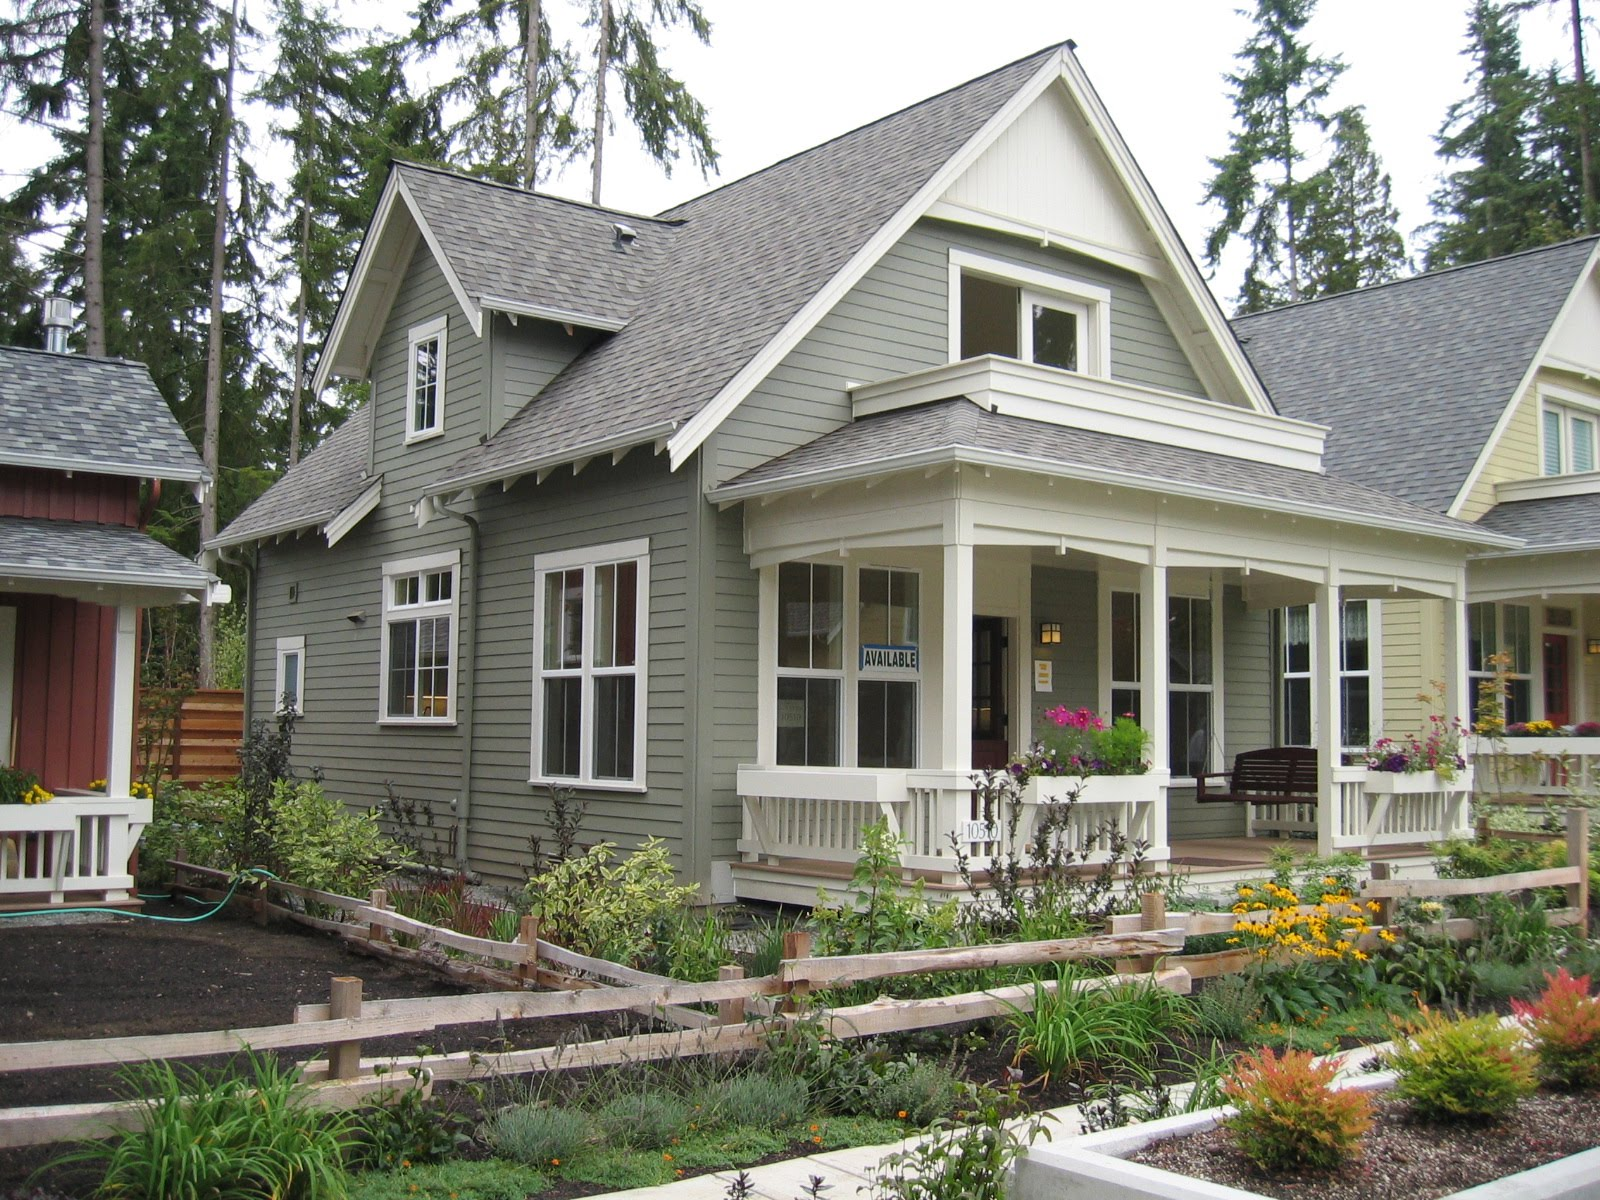 Details Of Home: Front Porch Inspiration